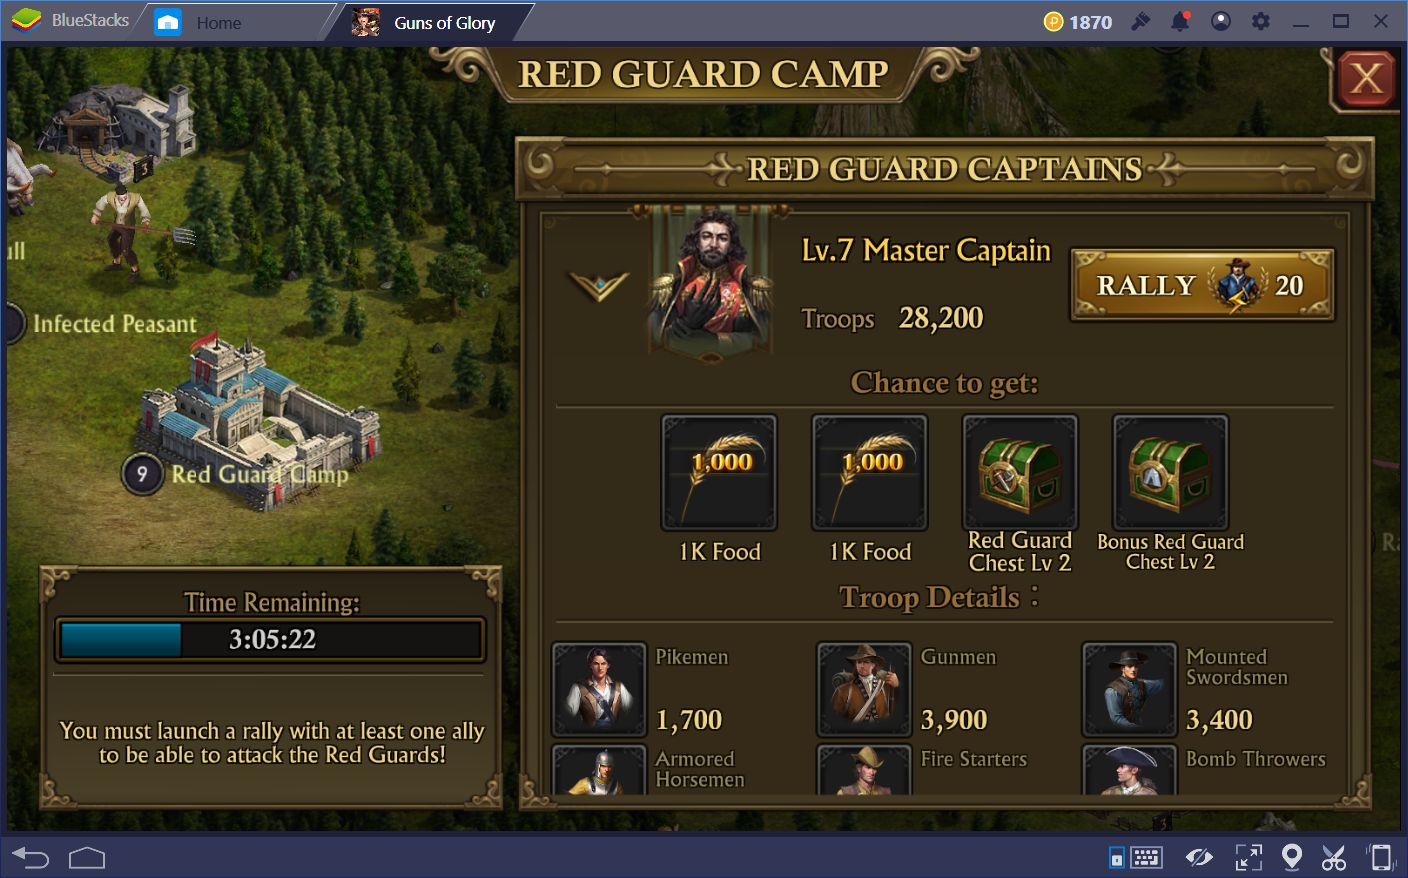 How To Attack Red Guard Camps In Guns of Glory on PC